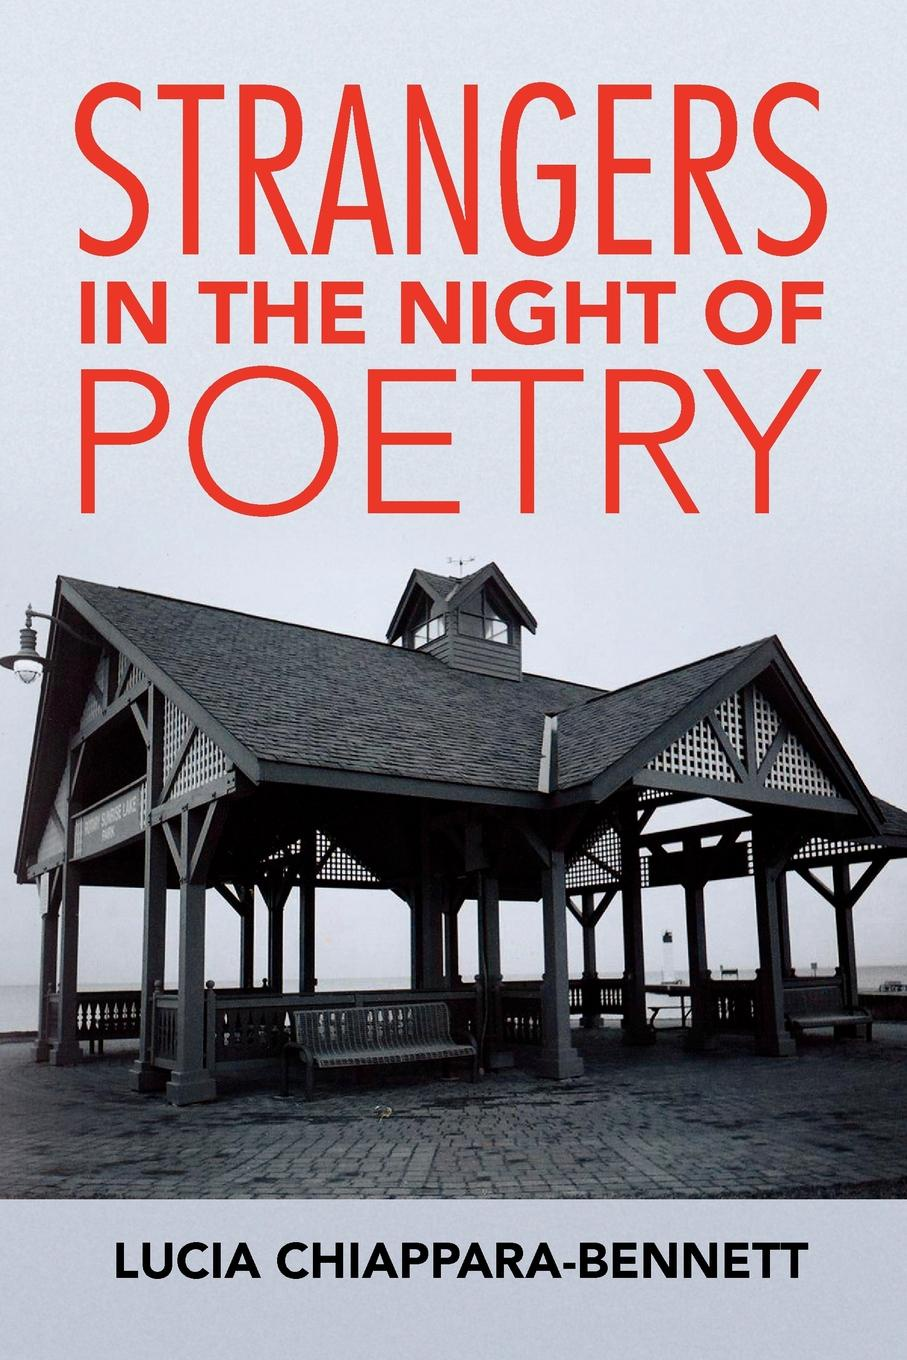 Lucia Chiappara-Bennett Strangers in the Night of Poetry for the love of strangers